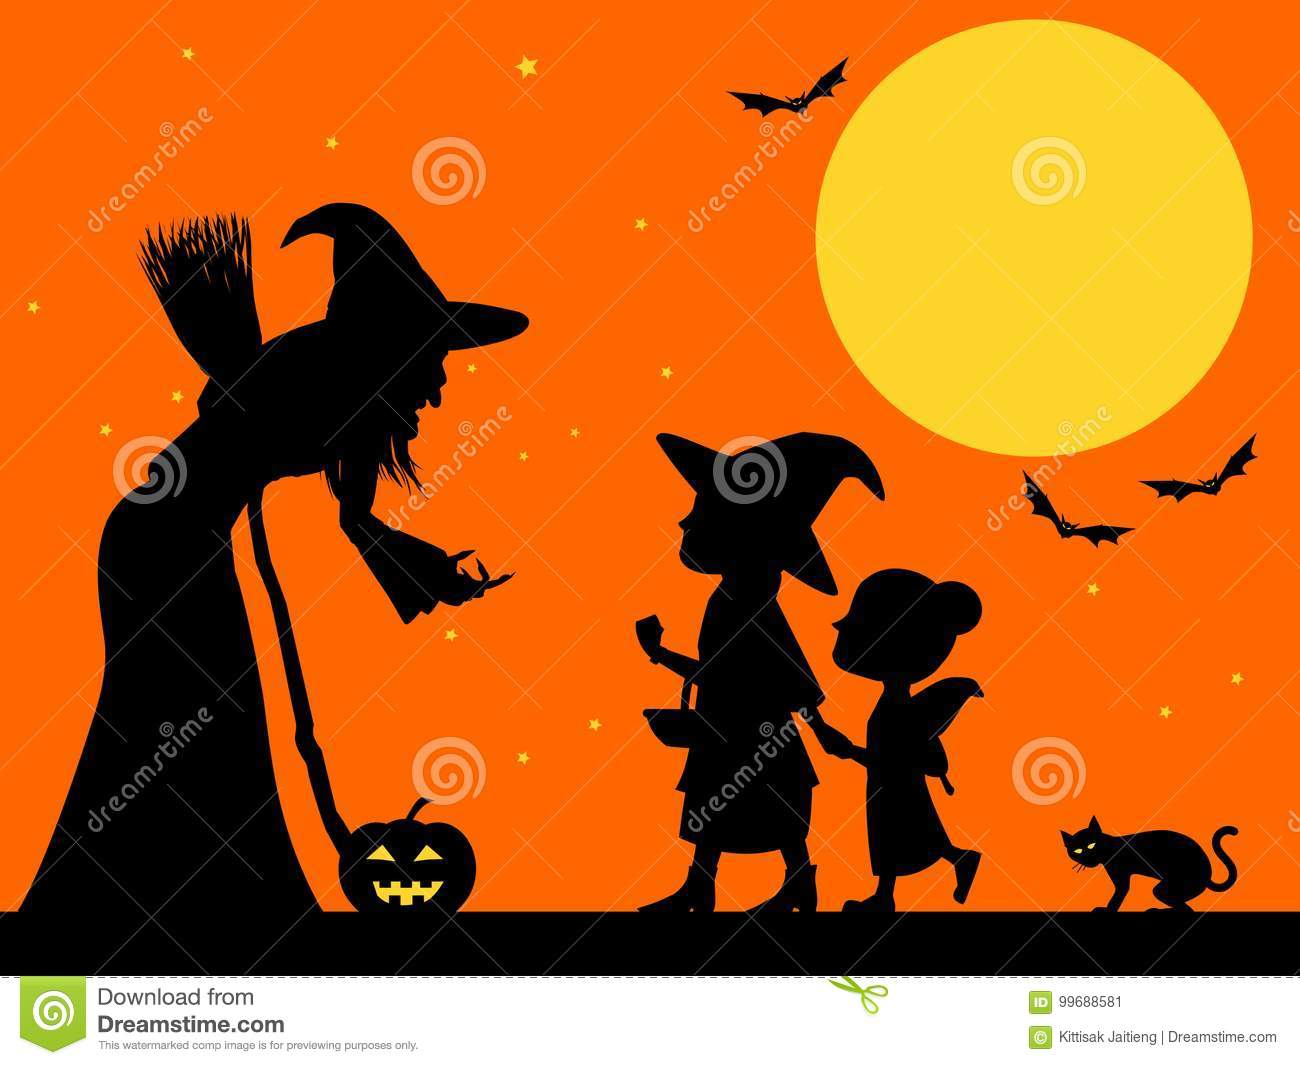 Halloween Trick Or Treat Silhouette.Trick Or Treat Silhouette Stock Vector Illustration Of